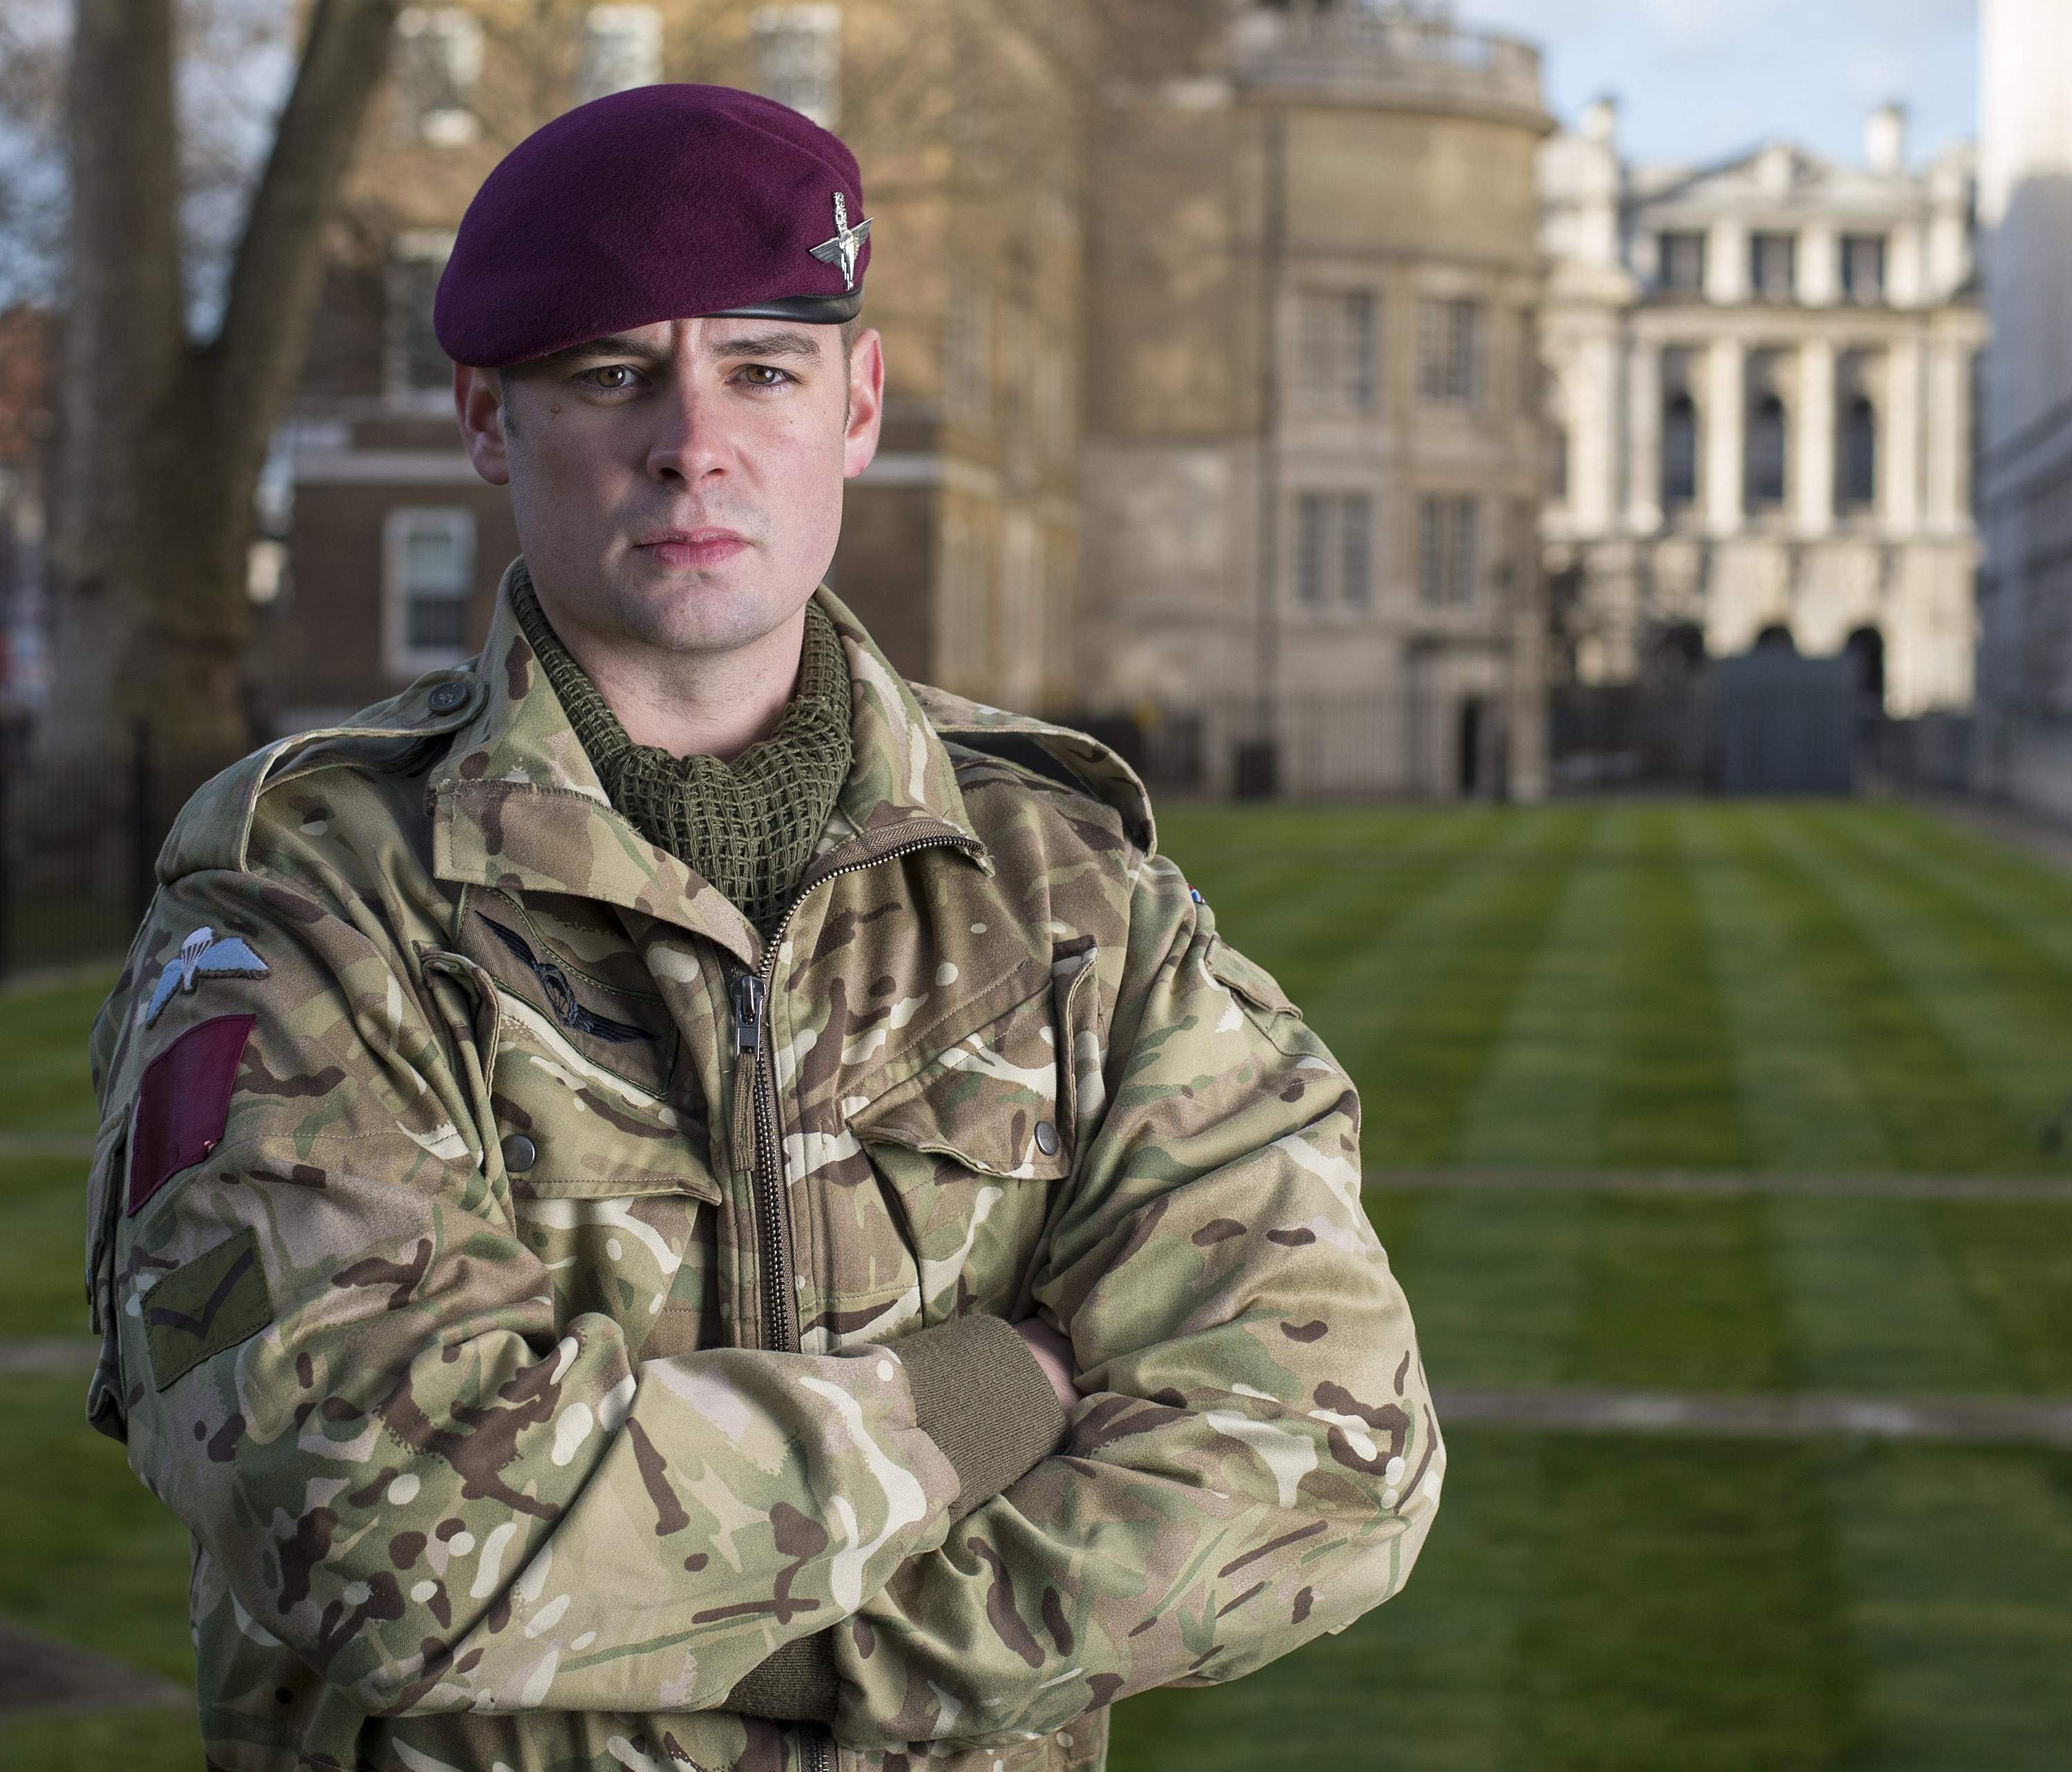 Lance Corporal Joshua Leakey of the Parachute Regiment is seen in this undated photograph released in London by Britain's Ministry of Defence February 26, 2015.